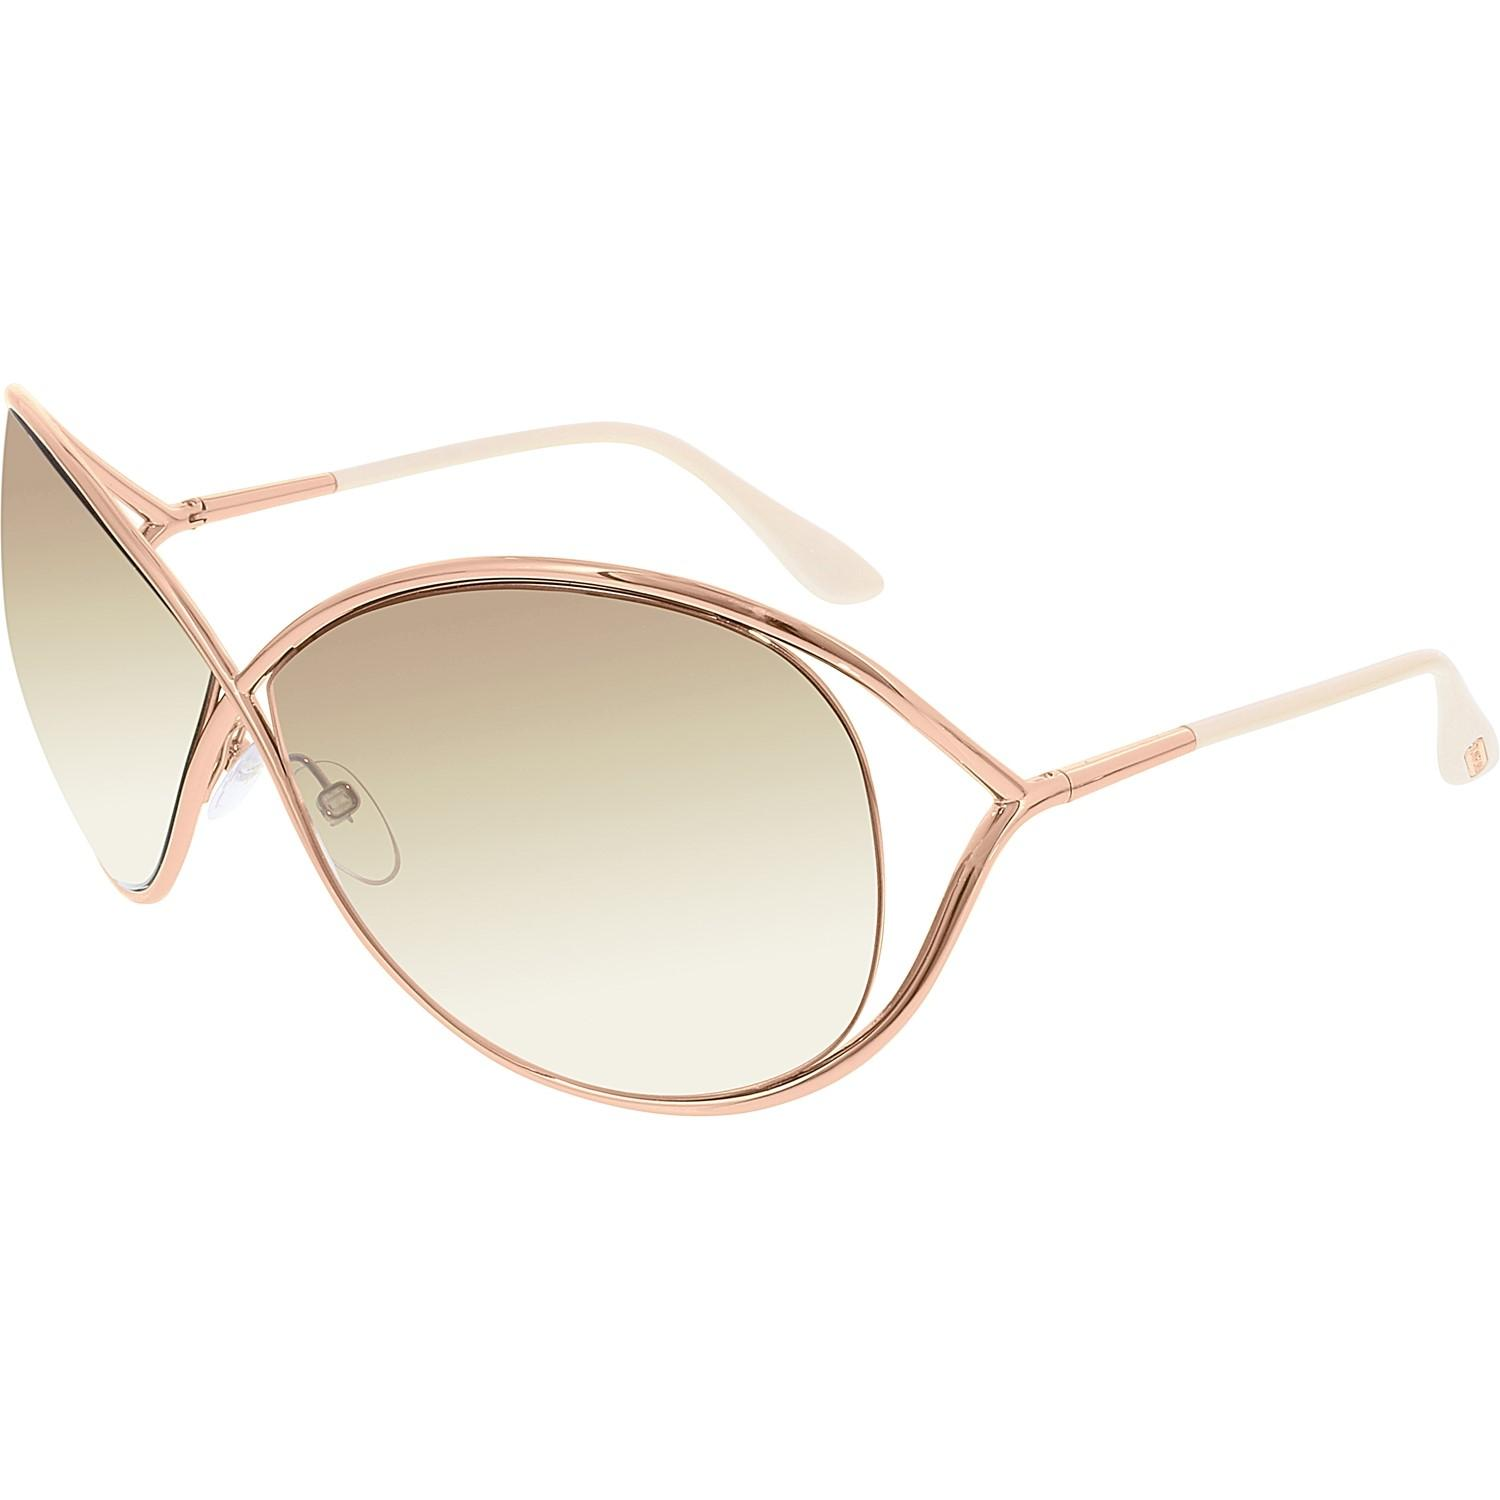 3bc979801a7e Lyst - Tom Ford Gradient Miranda Ft0130-28f-68 Rose Butterfly ...